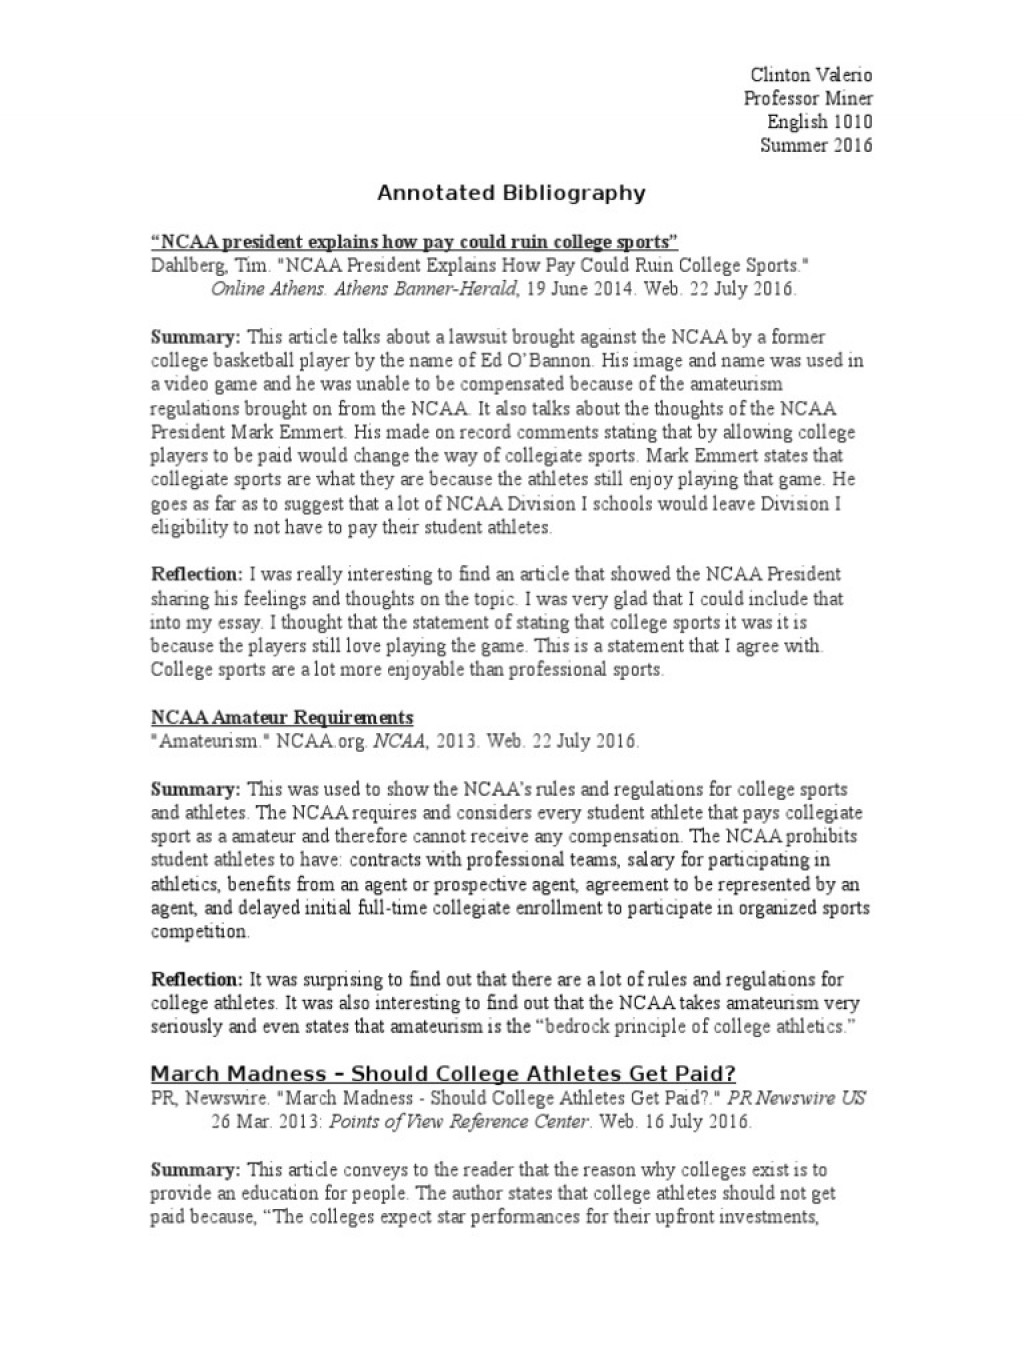 023 Pay For Researchaperaying College Athletes Essay Revision Annotated Bibliography National Collegiate Athletic Shouldaid Debate Outline Thesis Argument Conclusion Intro Title Hook20 Excellent Research Paper Equal Work In India Performance Writing Large